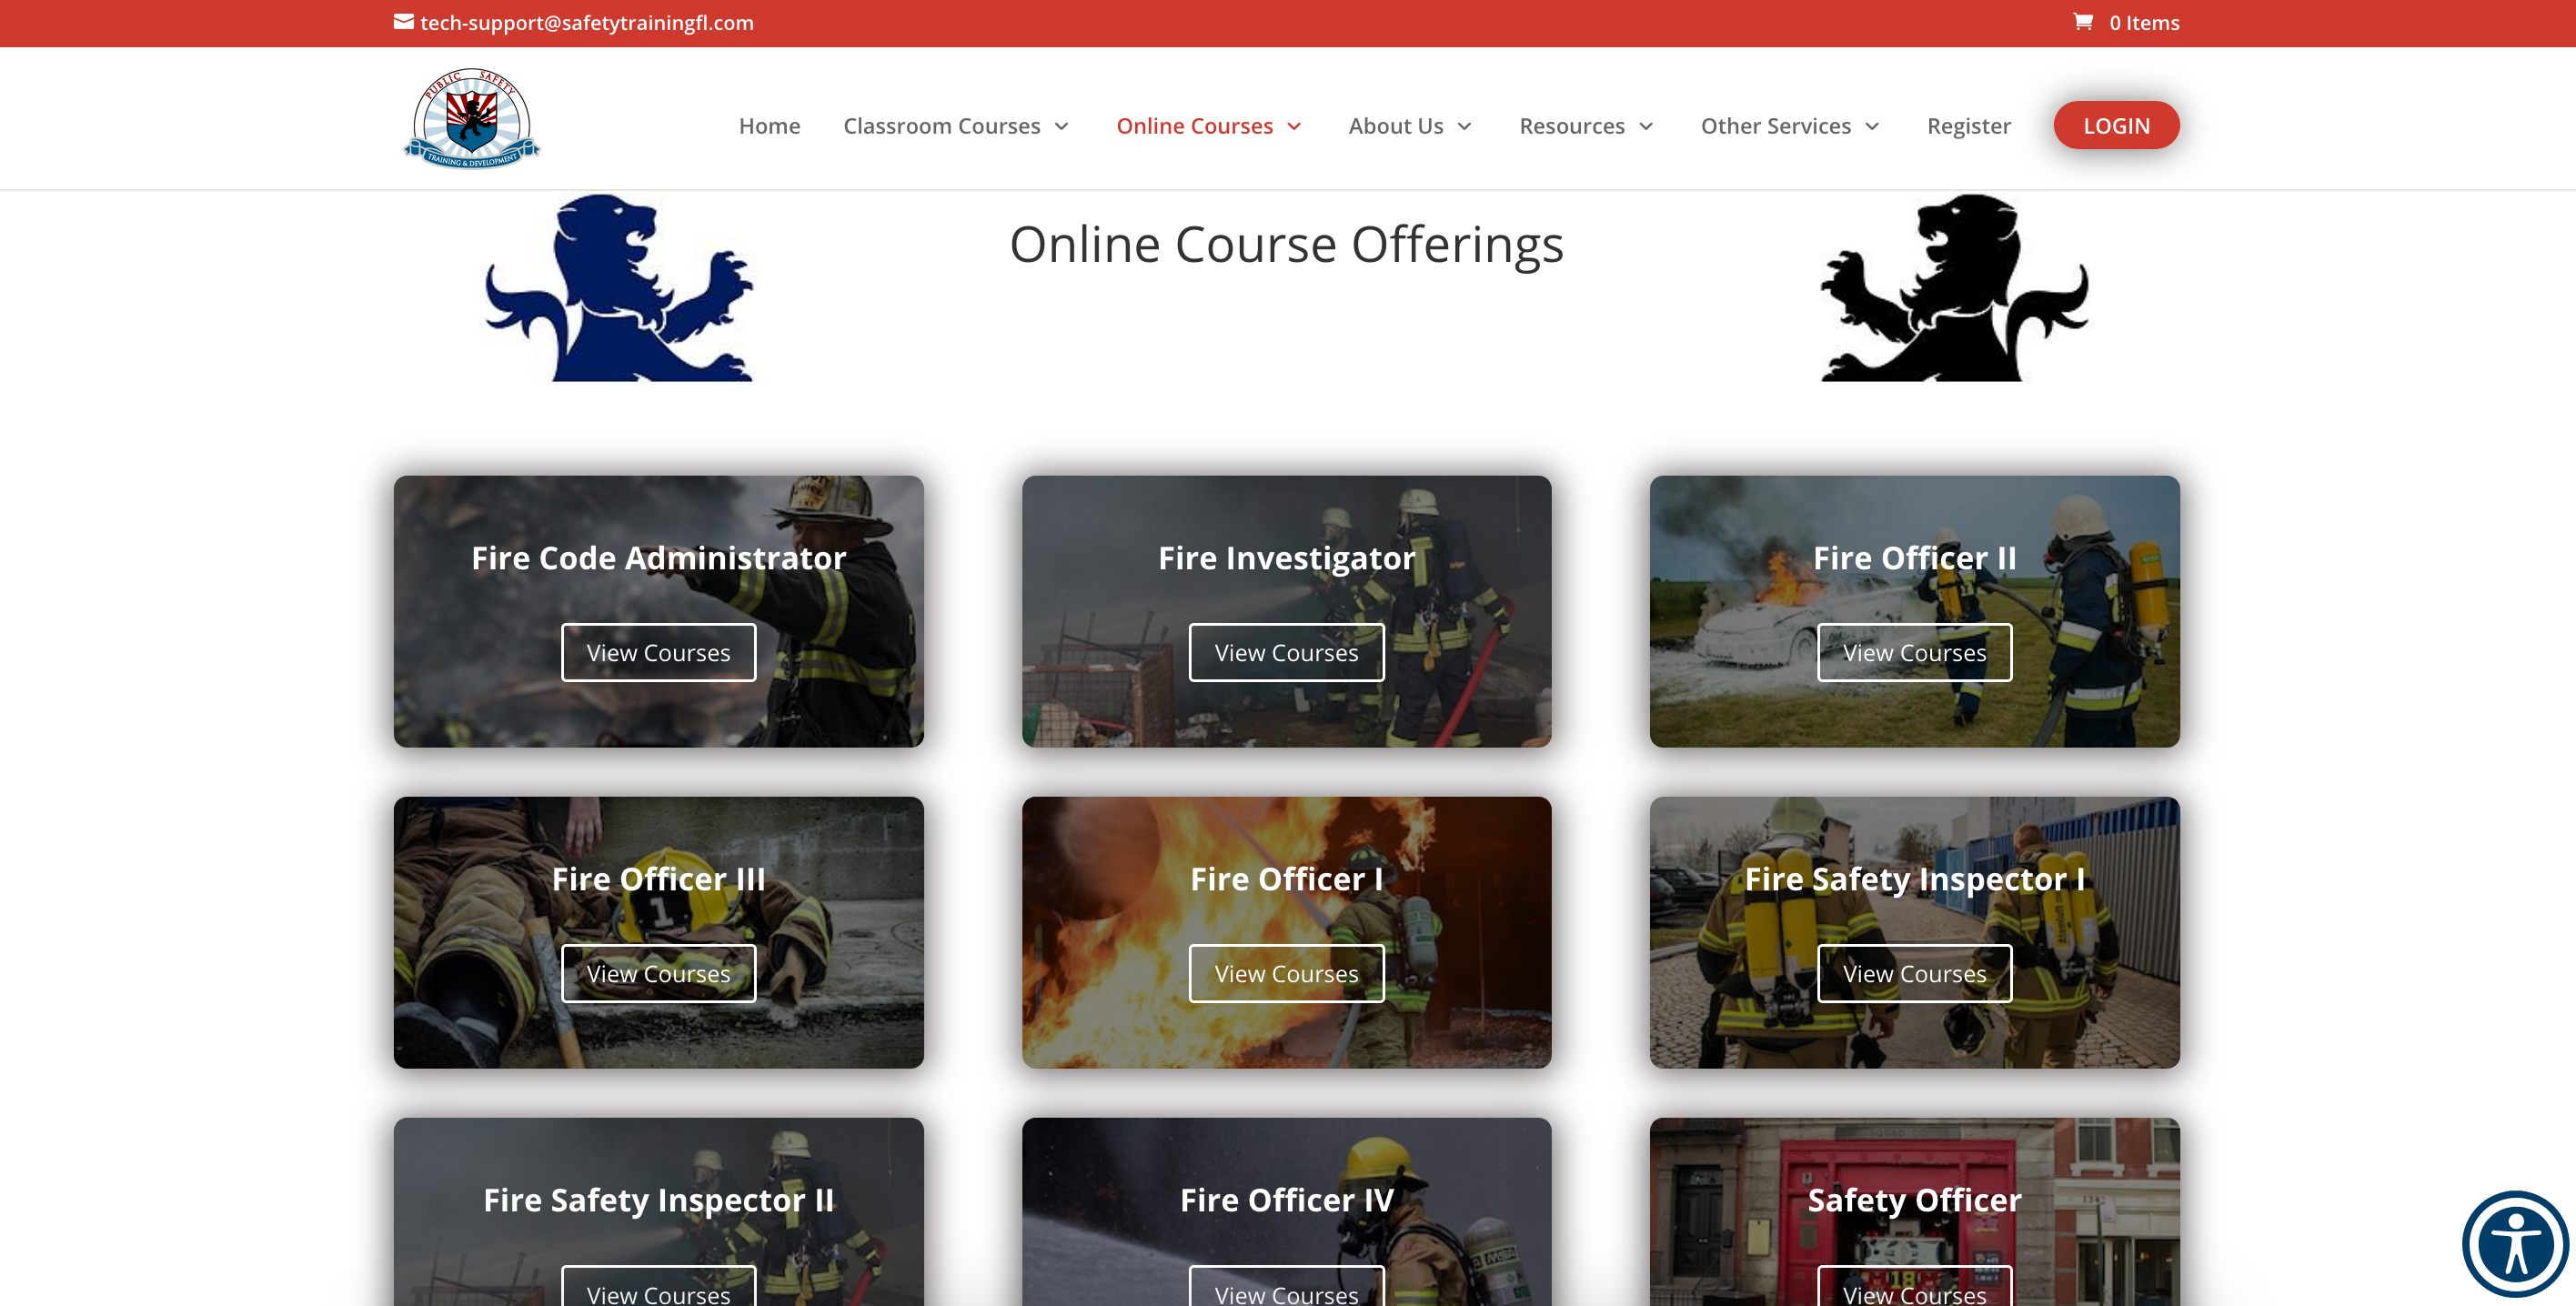 eLearning LMS Case Study Firefighting Fire Safety Training startup earns six figure annual sales selling online courses